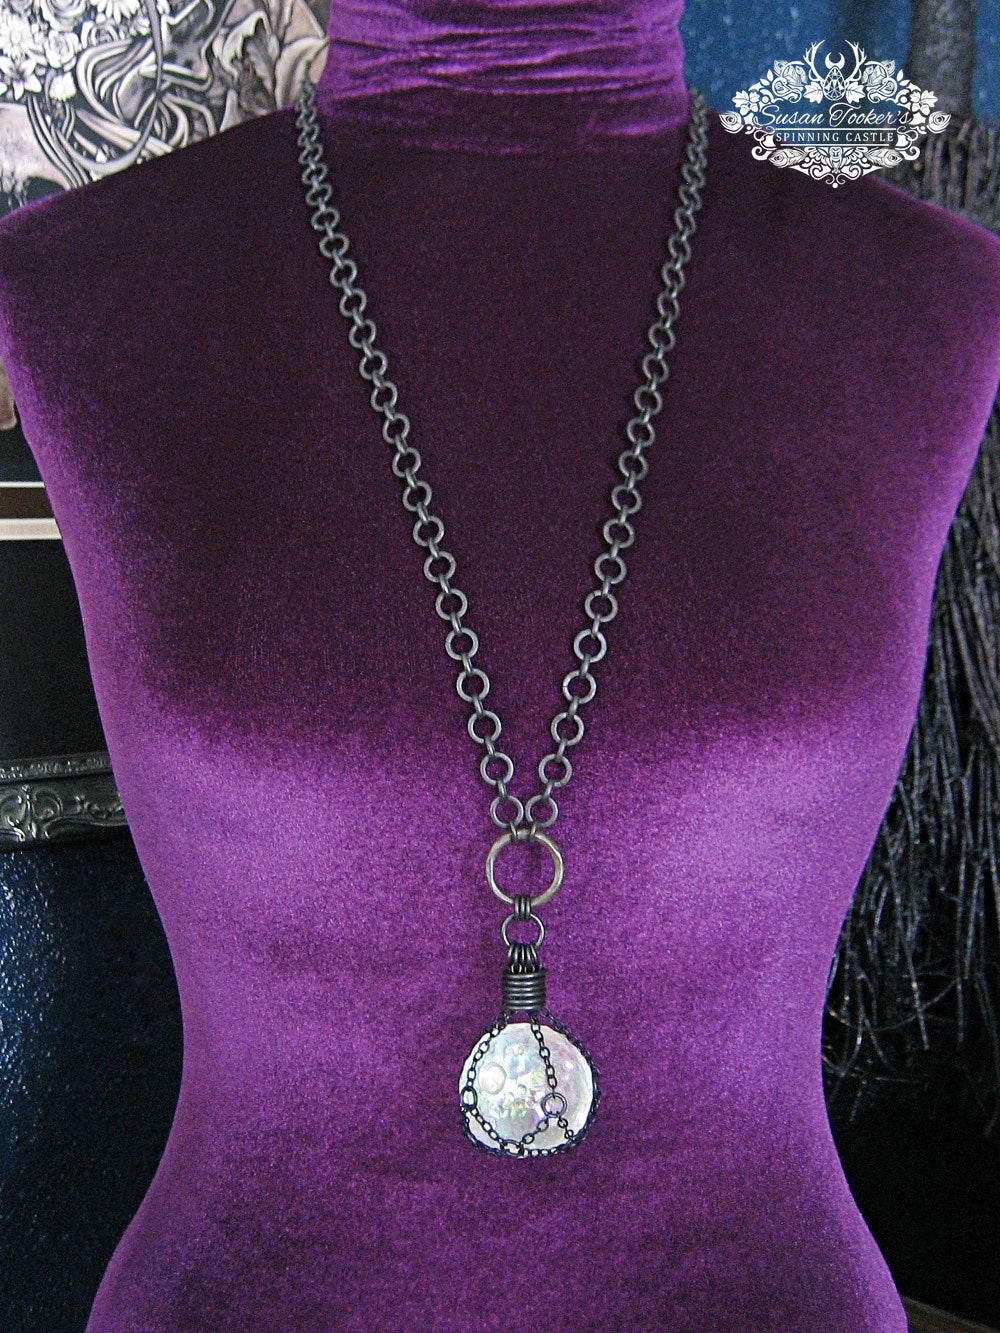 Image of THE GUARDIAN MOON - Angel Aura Quartz Crystal Moon Necklace Witchy Talisman Pagan Jewelry